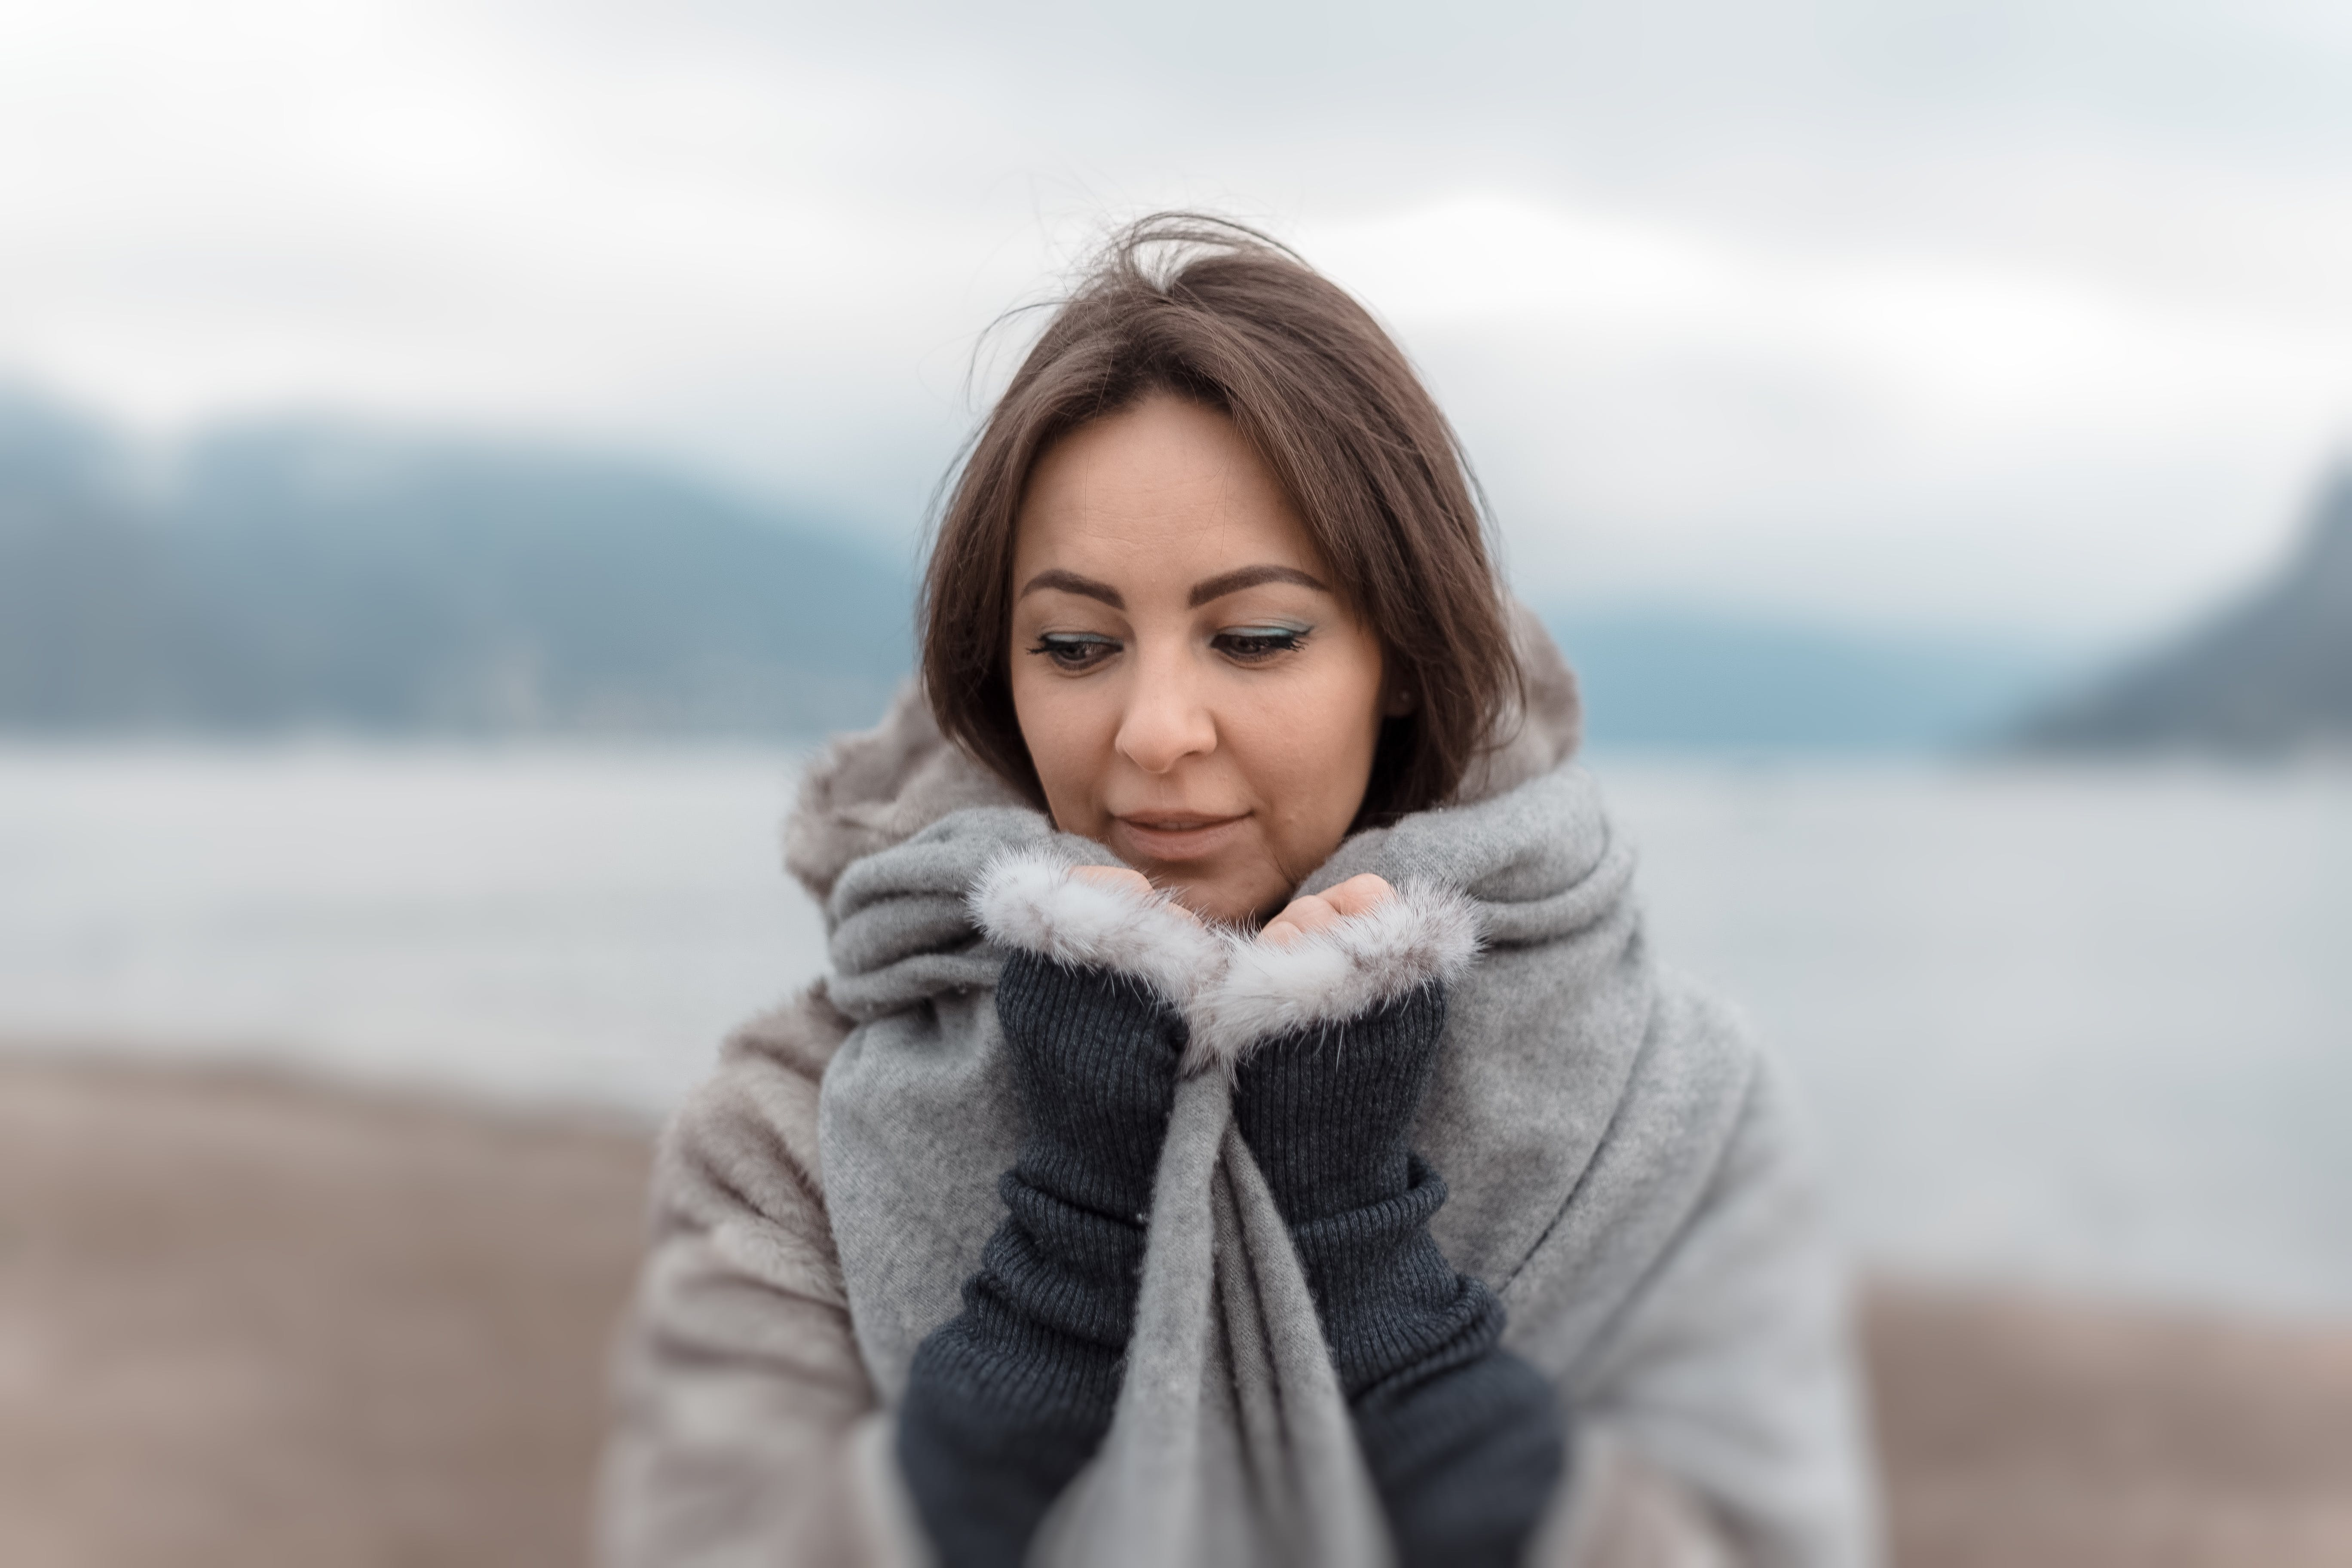 Selective Focus Photography of Woman Embracing Grey Blanket